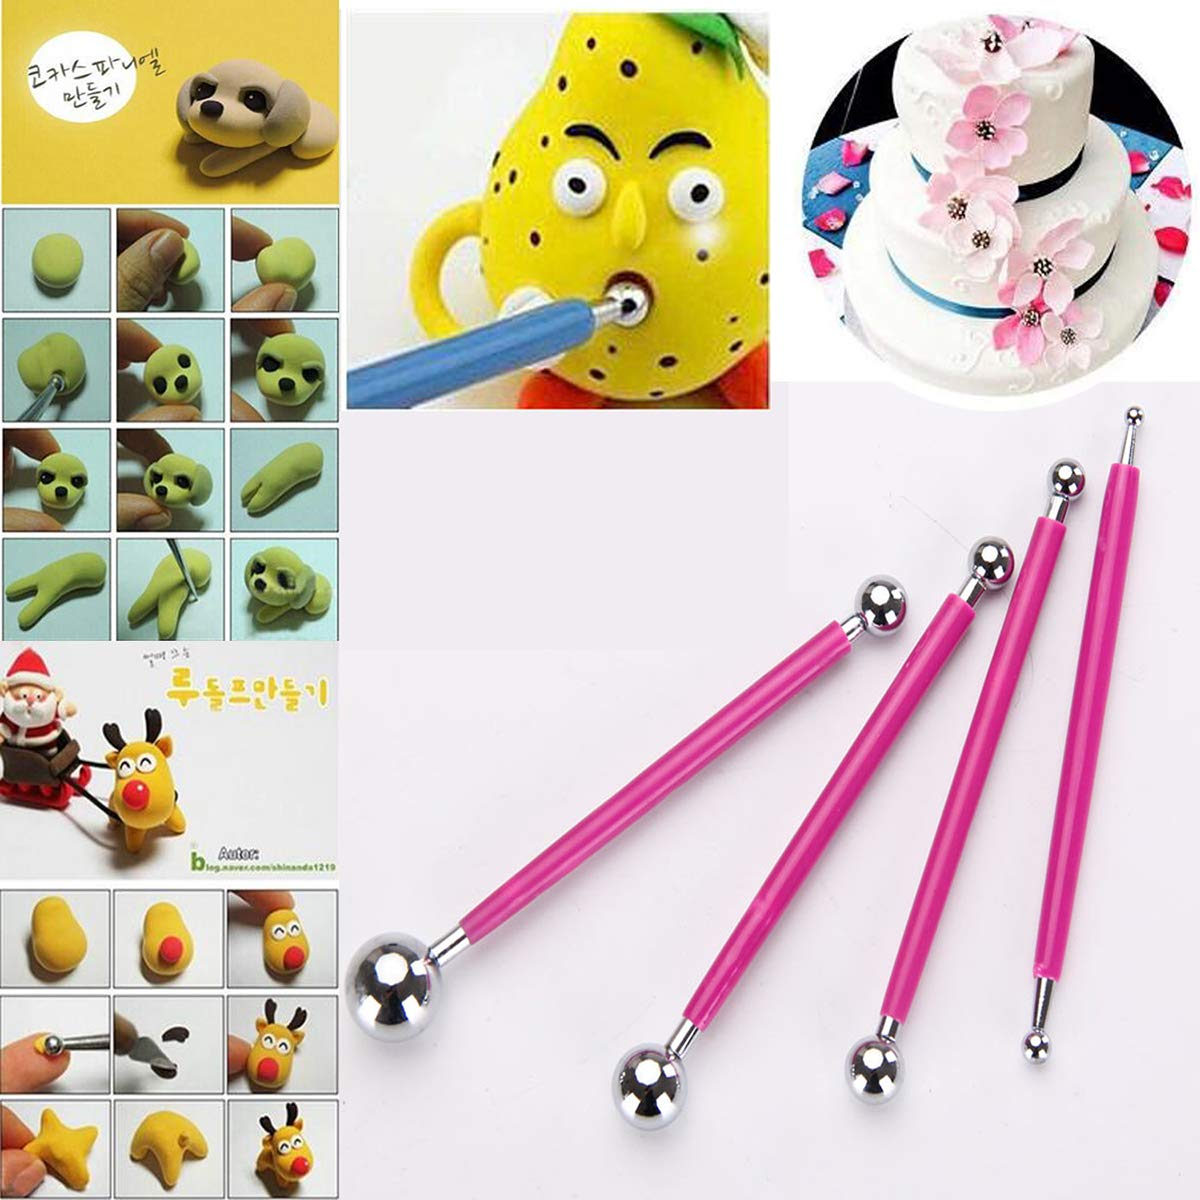 4PCS Set Ball Sphere Stylus Clay Pottery Ceramics Doll Sculpting Modeling Tools Double-Ended Metal Ball Cake Decoration Tools